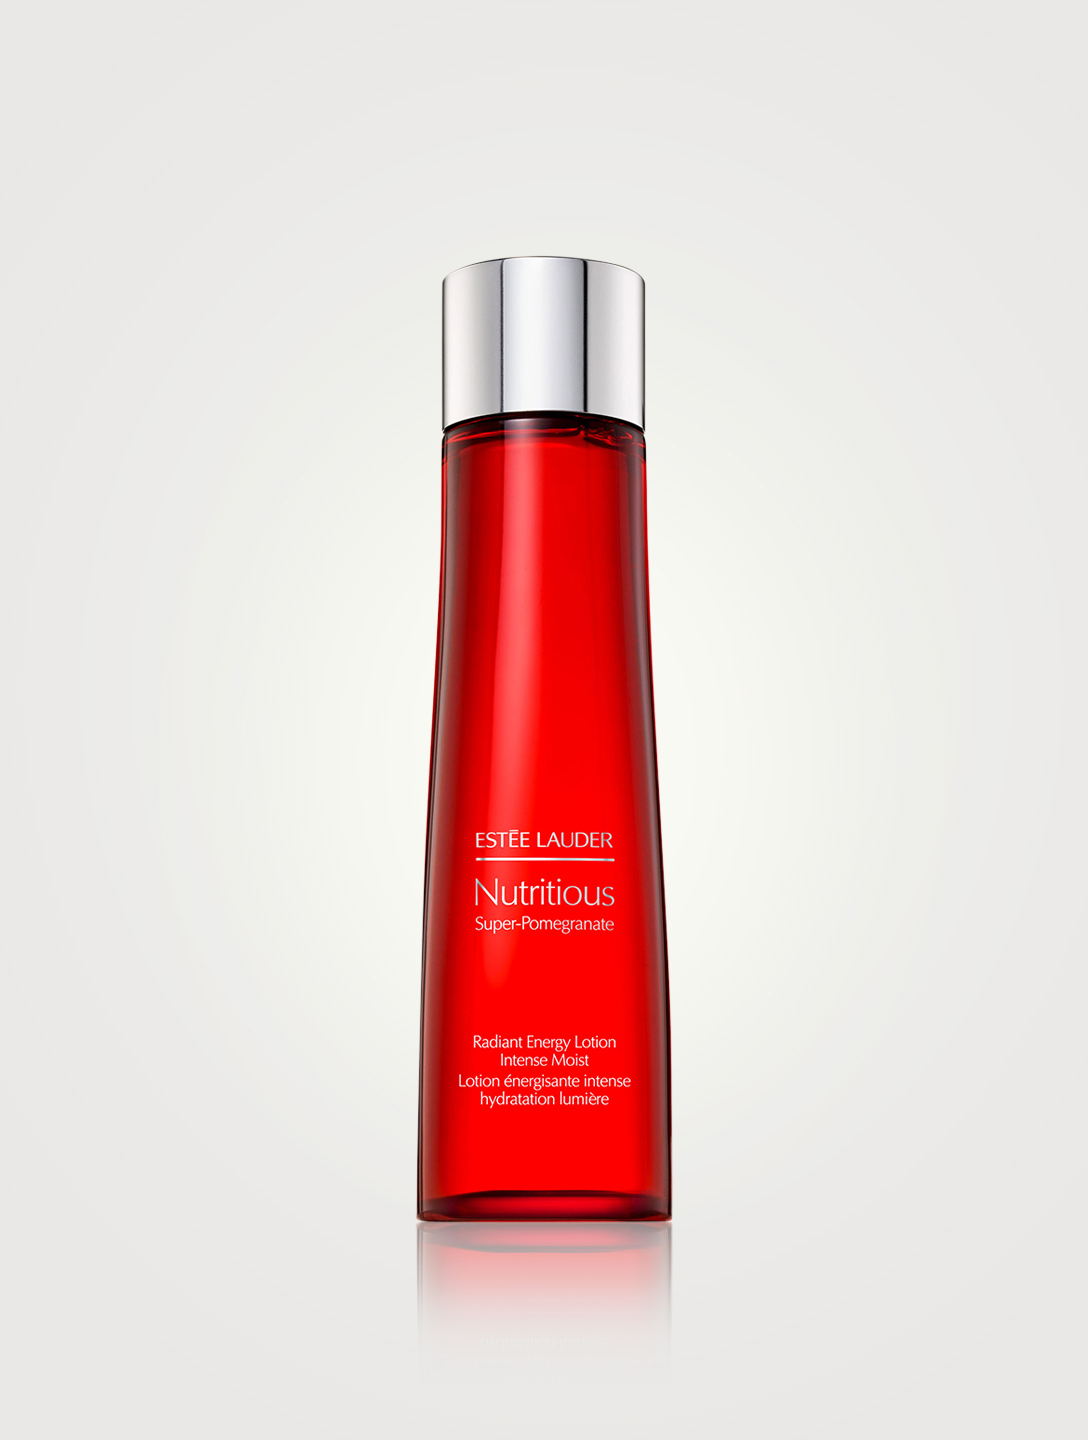 ESTÉE LAUDER Nutritious Super-Pomegranate Radiant Energy Lotion Intense Moisture Beauty